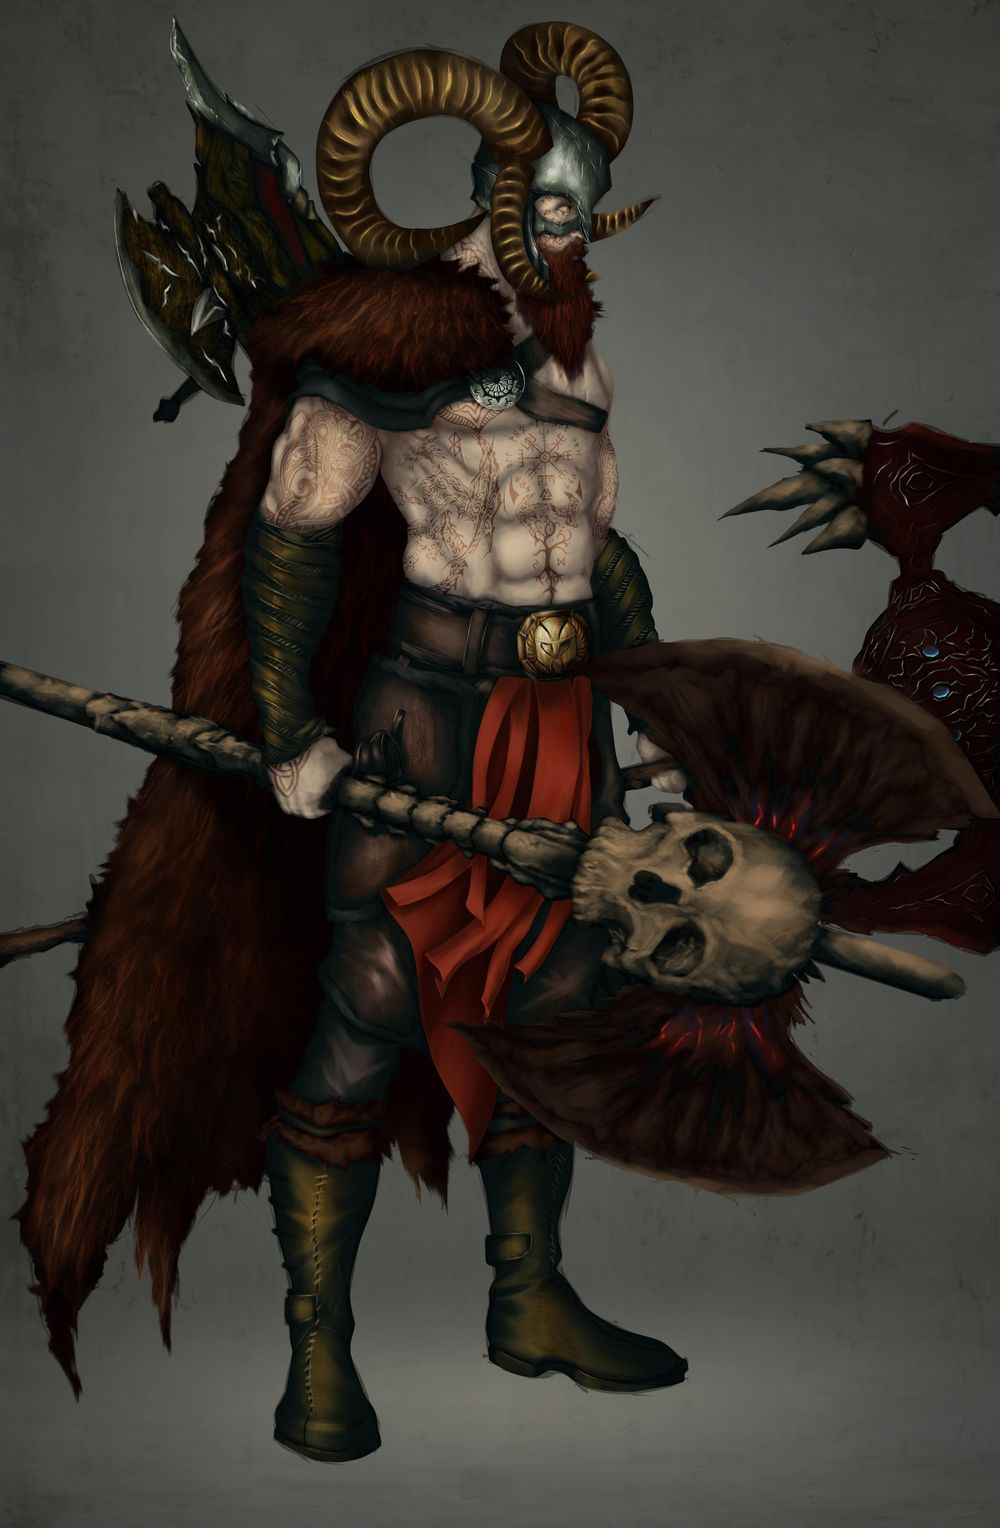 Barbarian - image 1 - student project